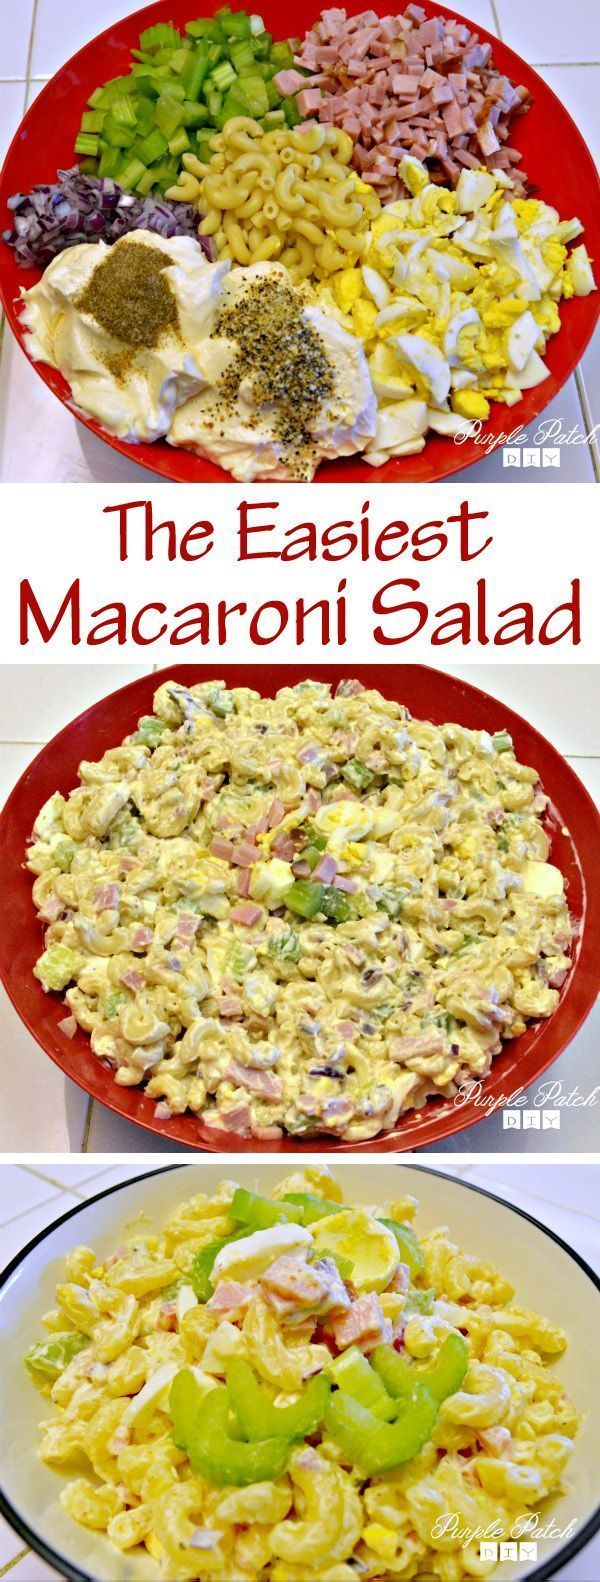 How to make Macaroni Salad. Great for picnics and barbeques!